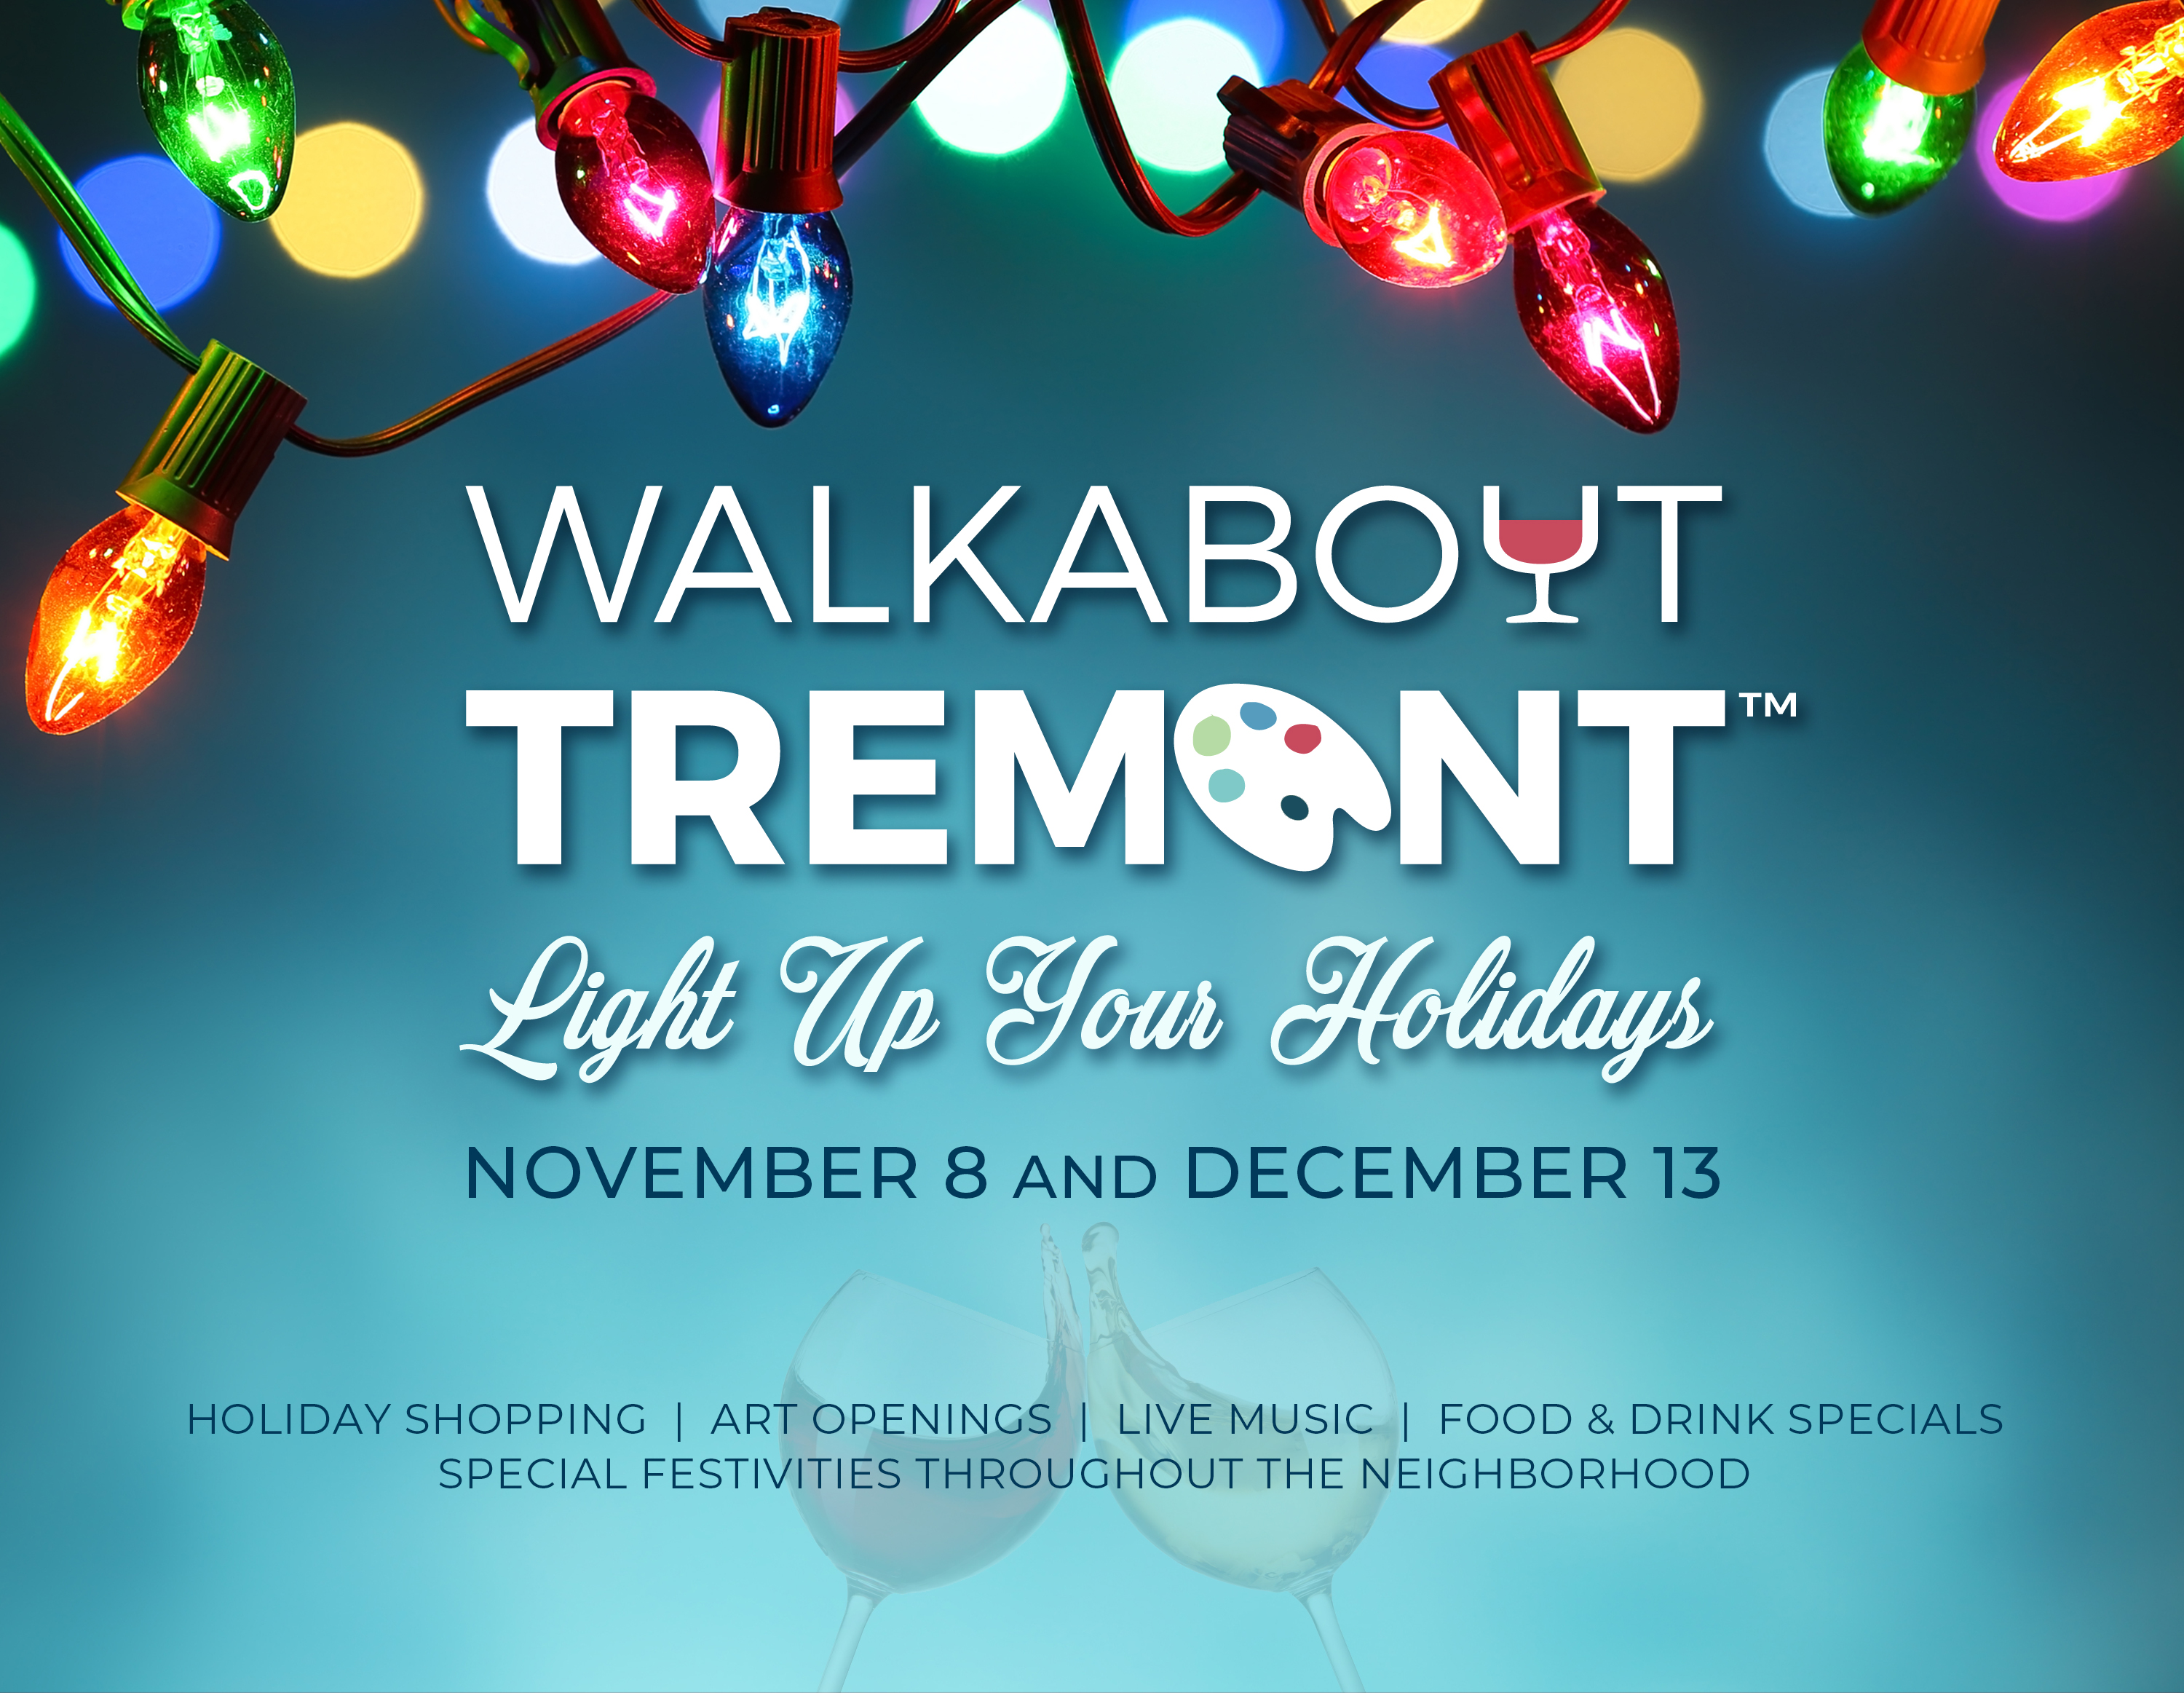 NOVEMBER WALKABOUT TREMONT KICKS OFF THE HOLIDAY SEASON